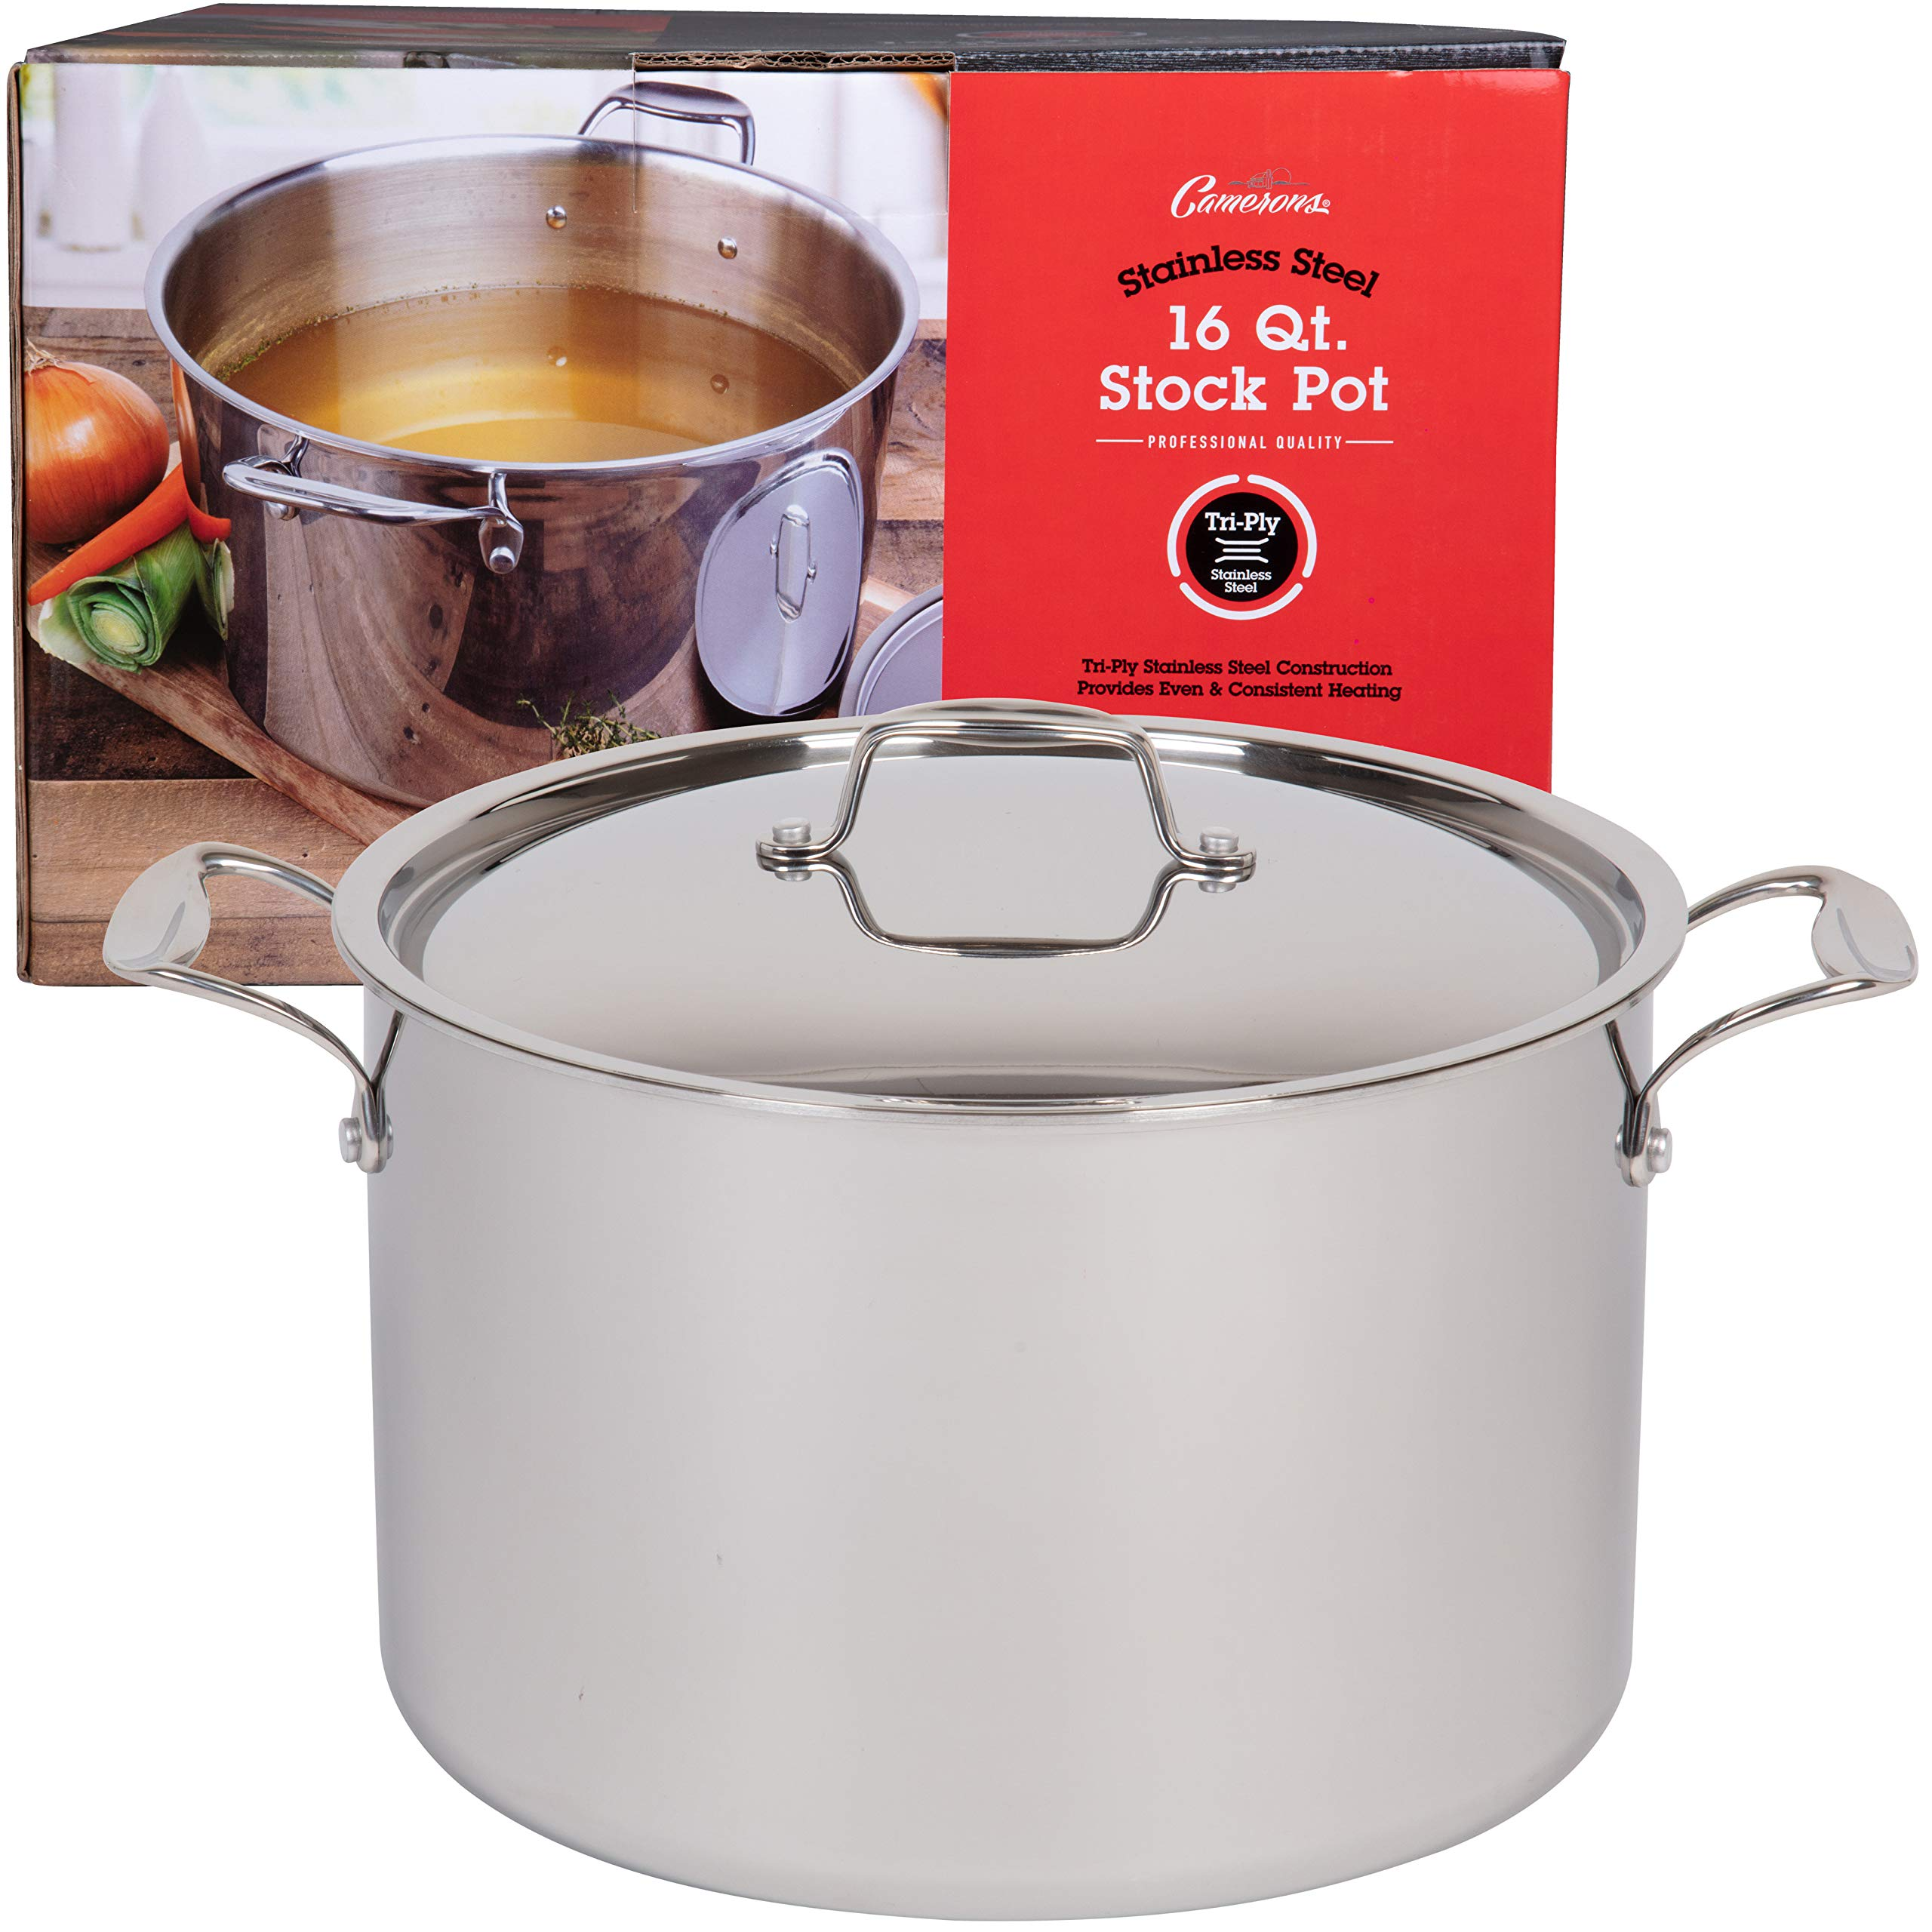 16 Quart Stockpot- Tri-Ply Stainless Steel Stock Pot- Commercial Grade Sauce Pot for Canning w Stick Resistant Interior, Stay Cool Handles and Induction Compatible